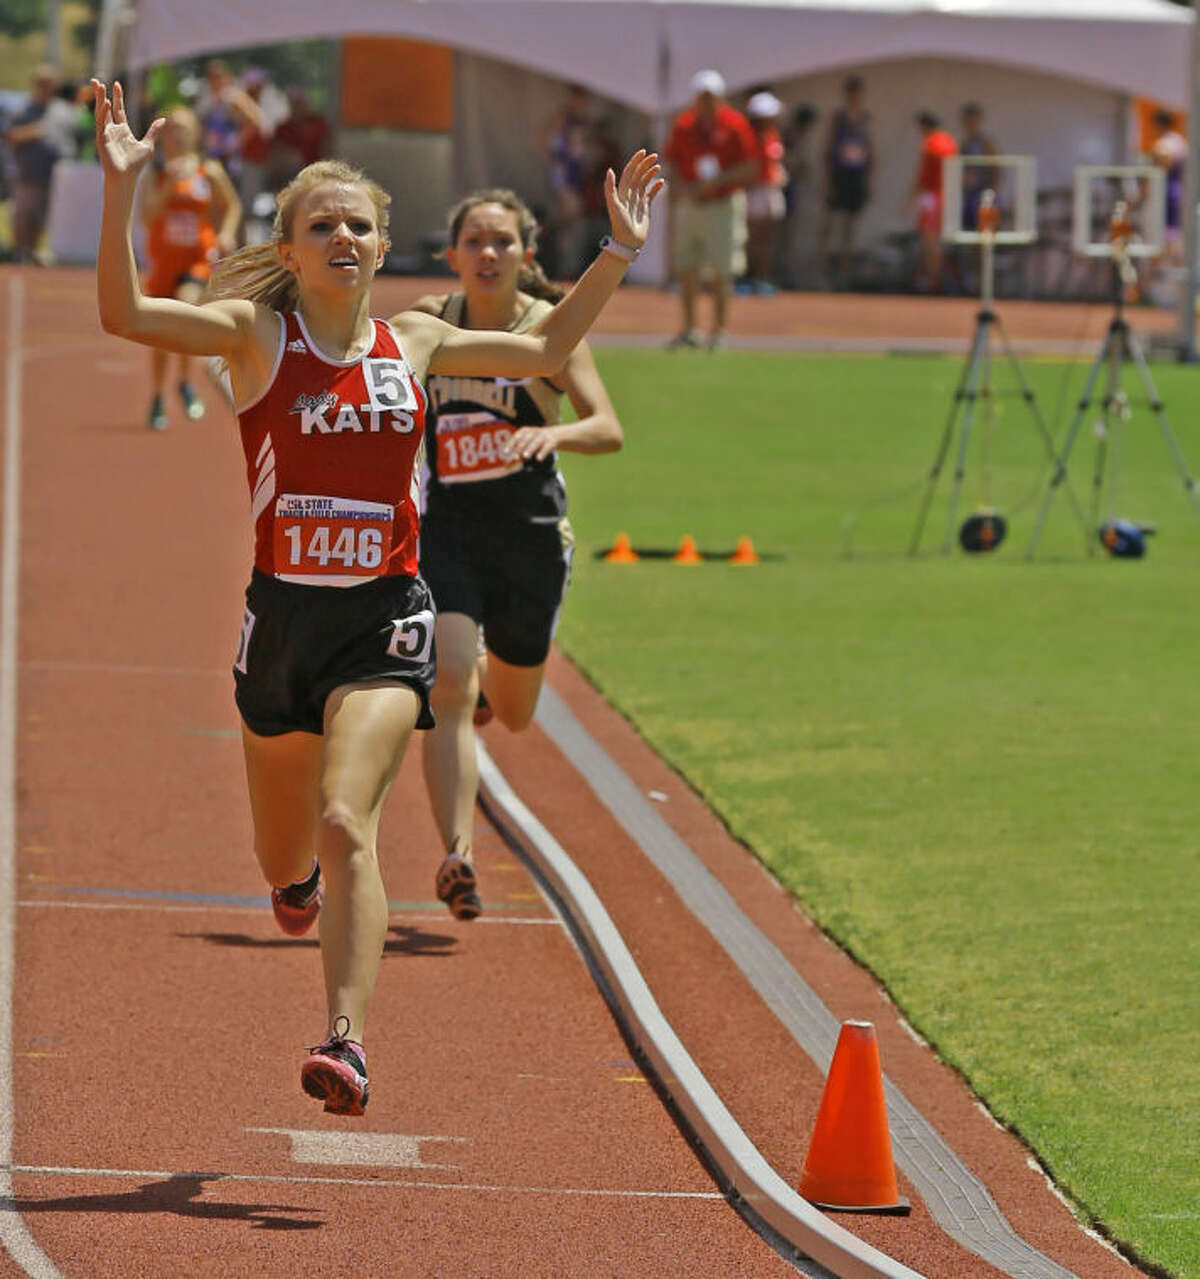 Garden City's Kamie Halfmann wins her fourth gold medal in the last two years at the UIL state Track and Field meet. Halfmann won both the 1,600 and 3,200 meter runs in back-to-back years.